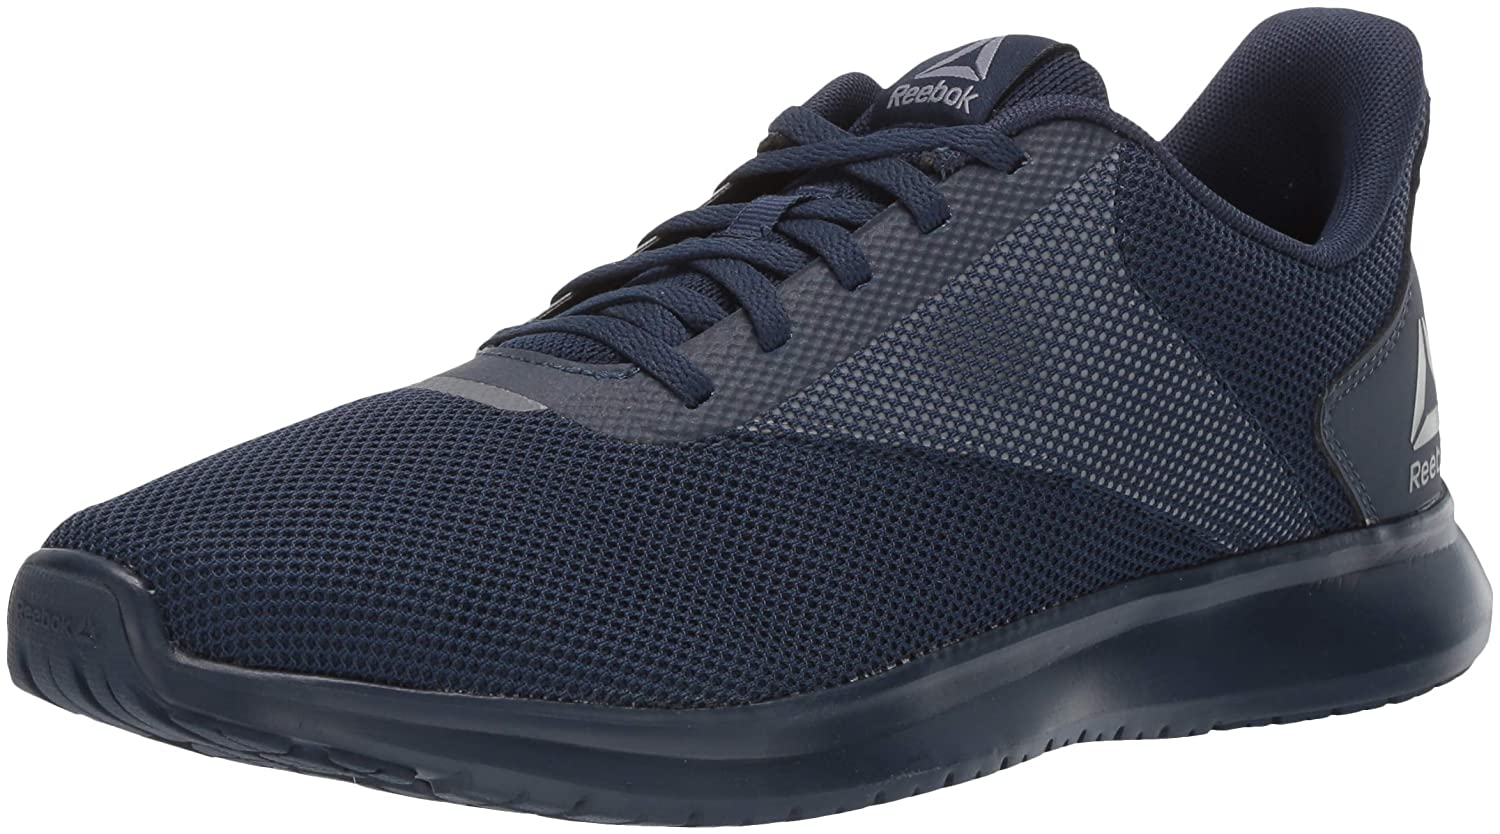 Navy Cold gris Reebok - Instalite Lux Homme 42.5 EU